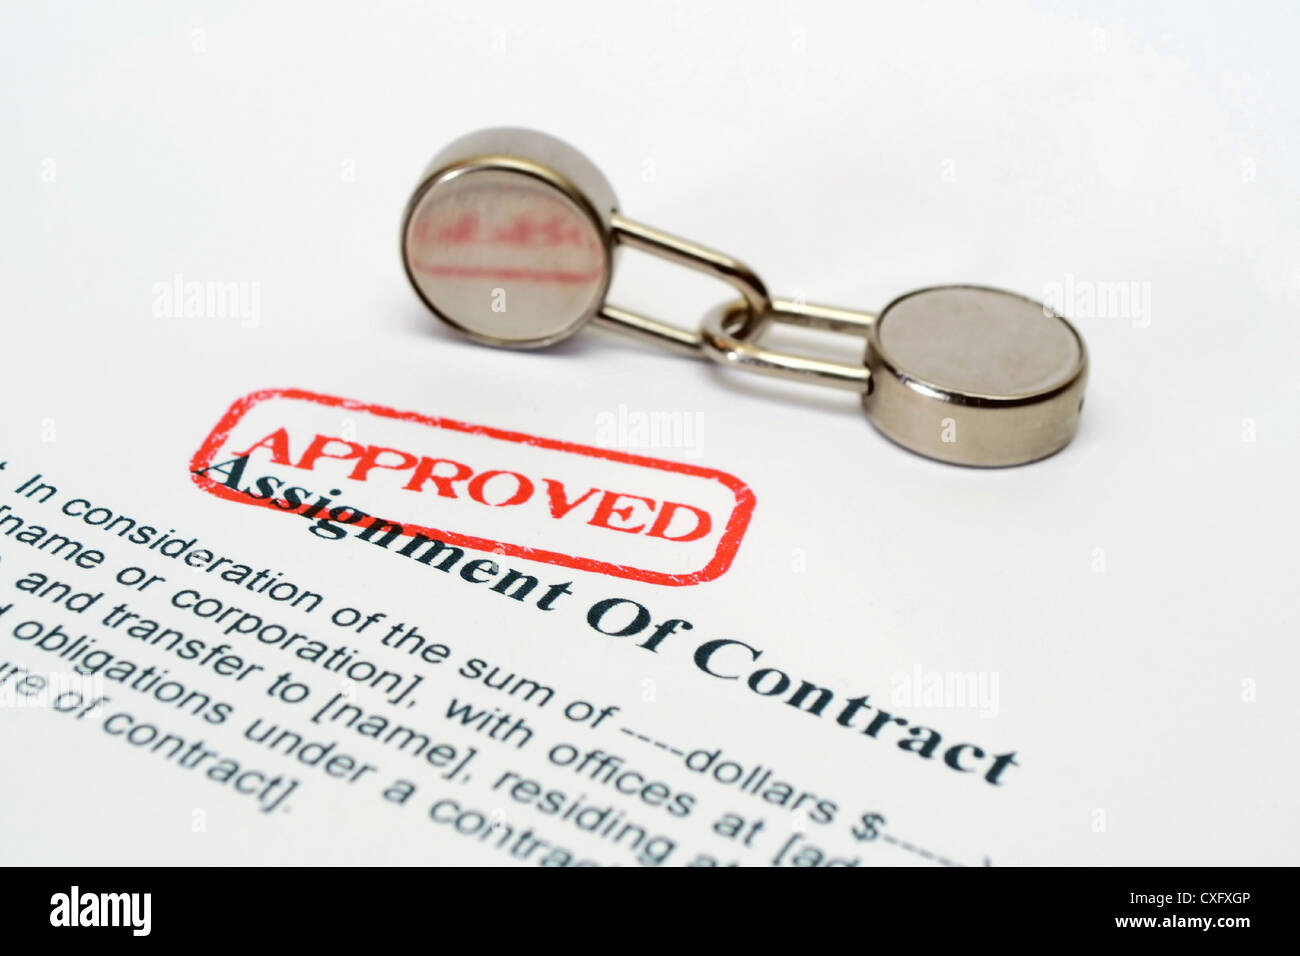 Assignment of contract approved Stock Photo: 50751926 - Alamy